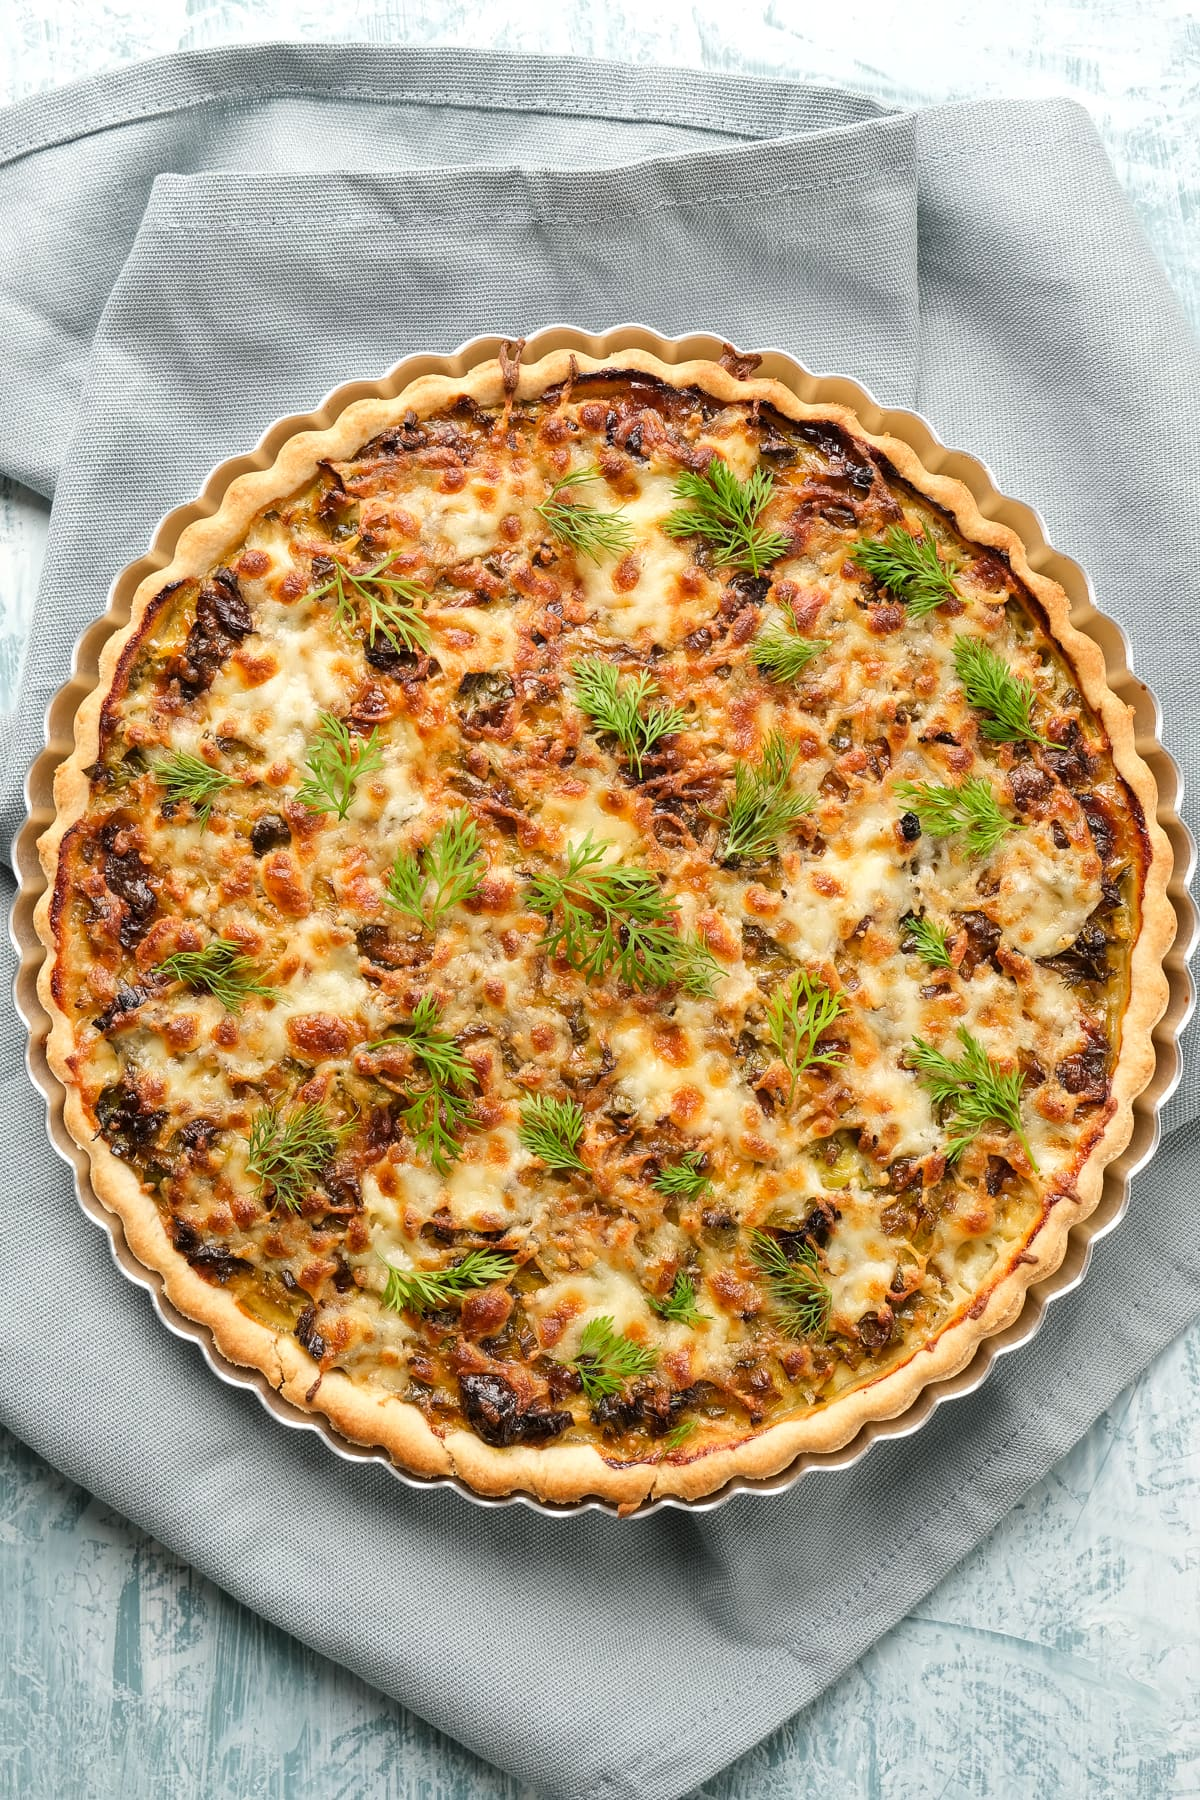 Quiche with cheese and leeks in a tart pan on a grey background.